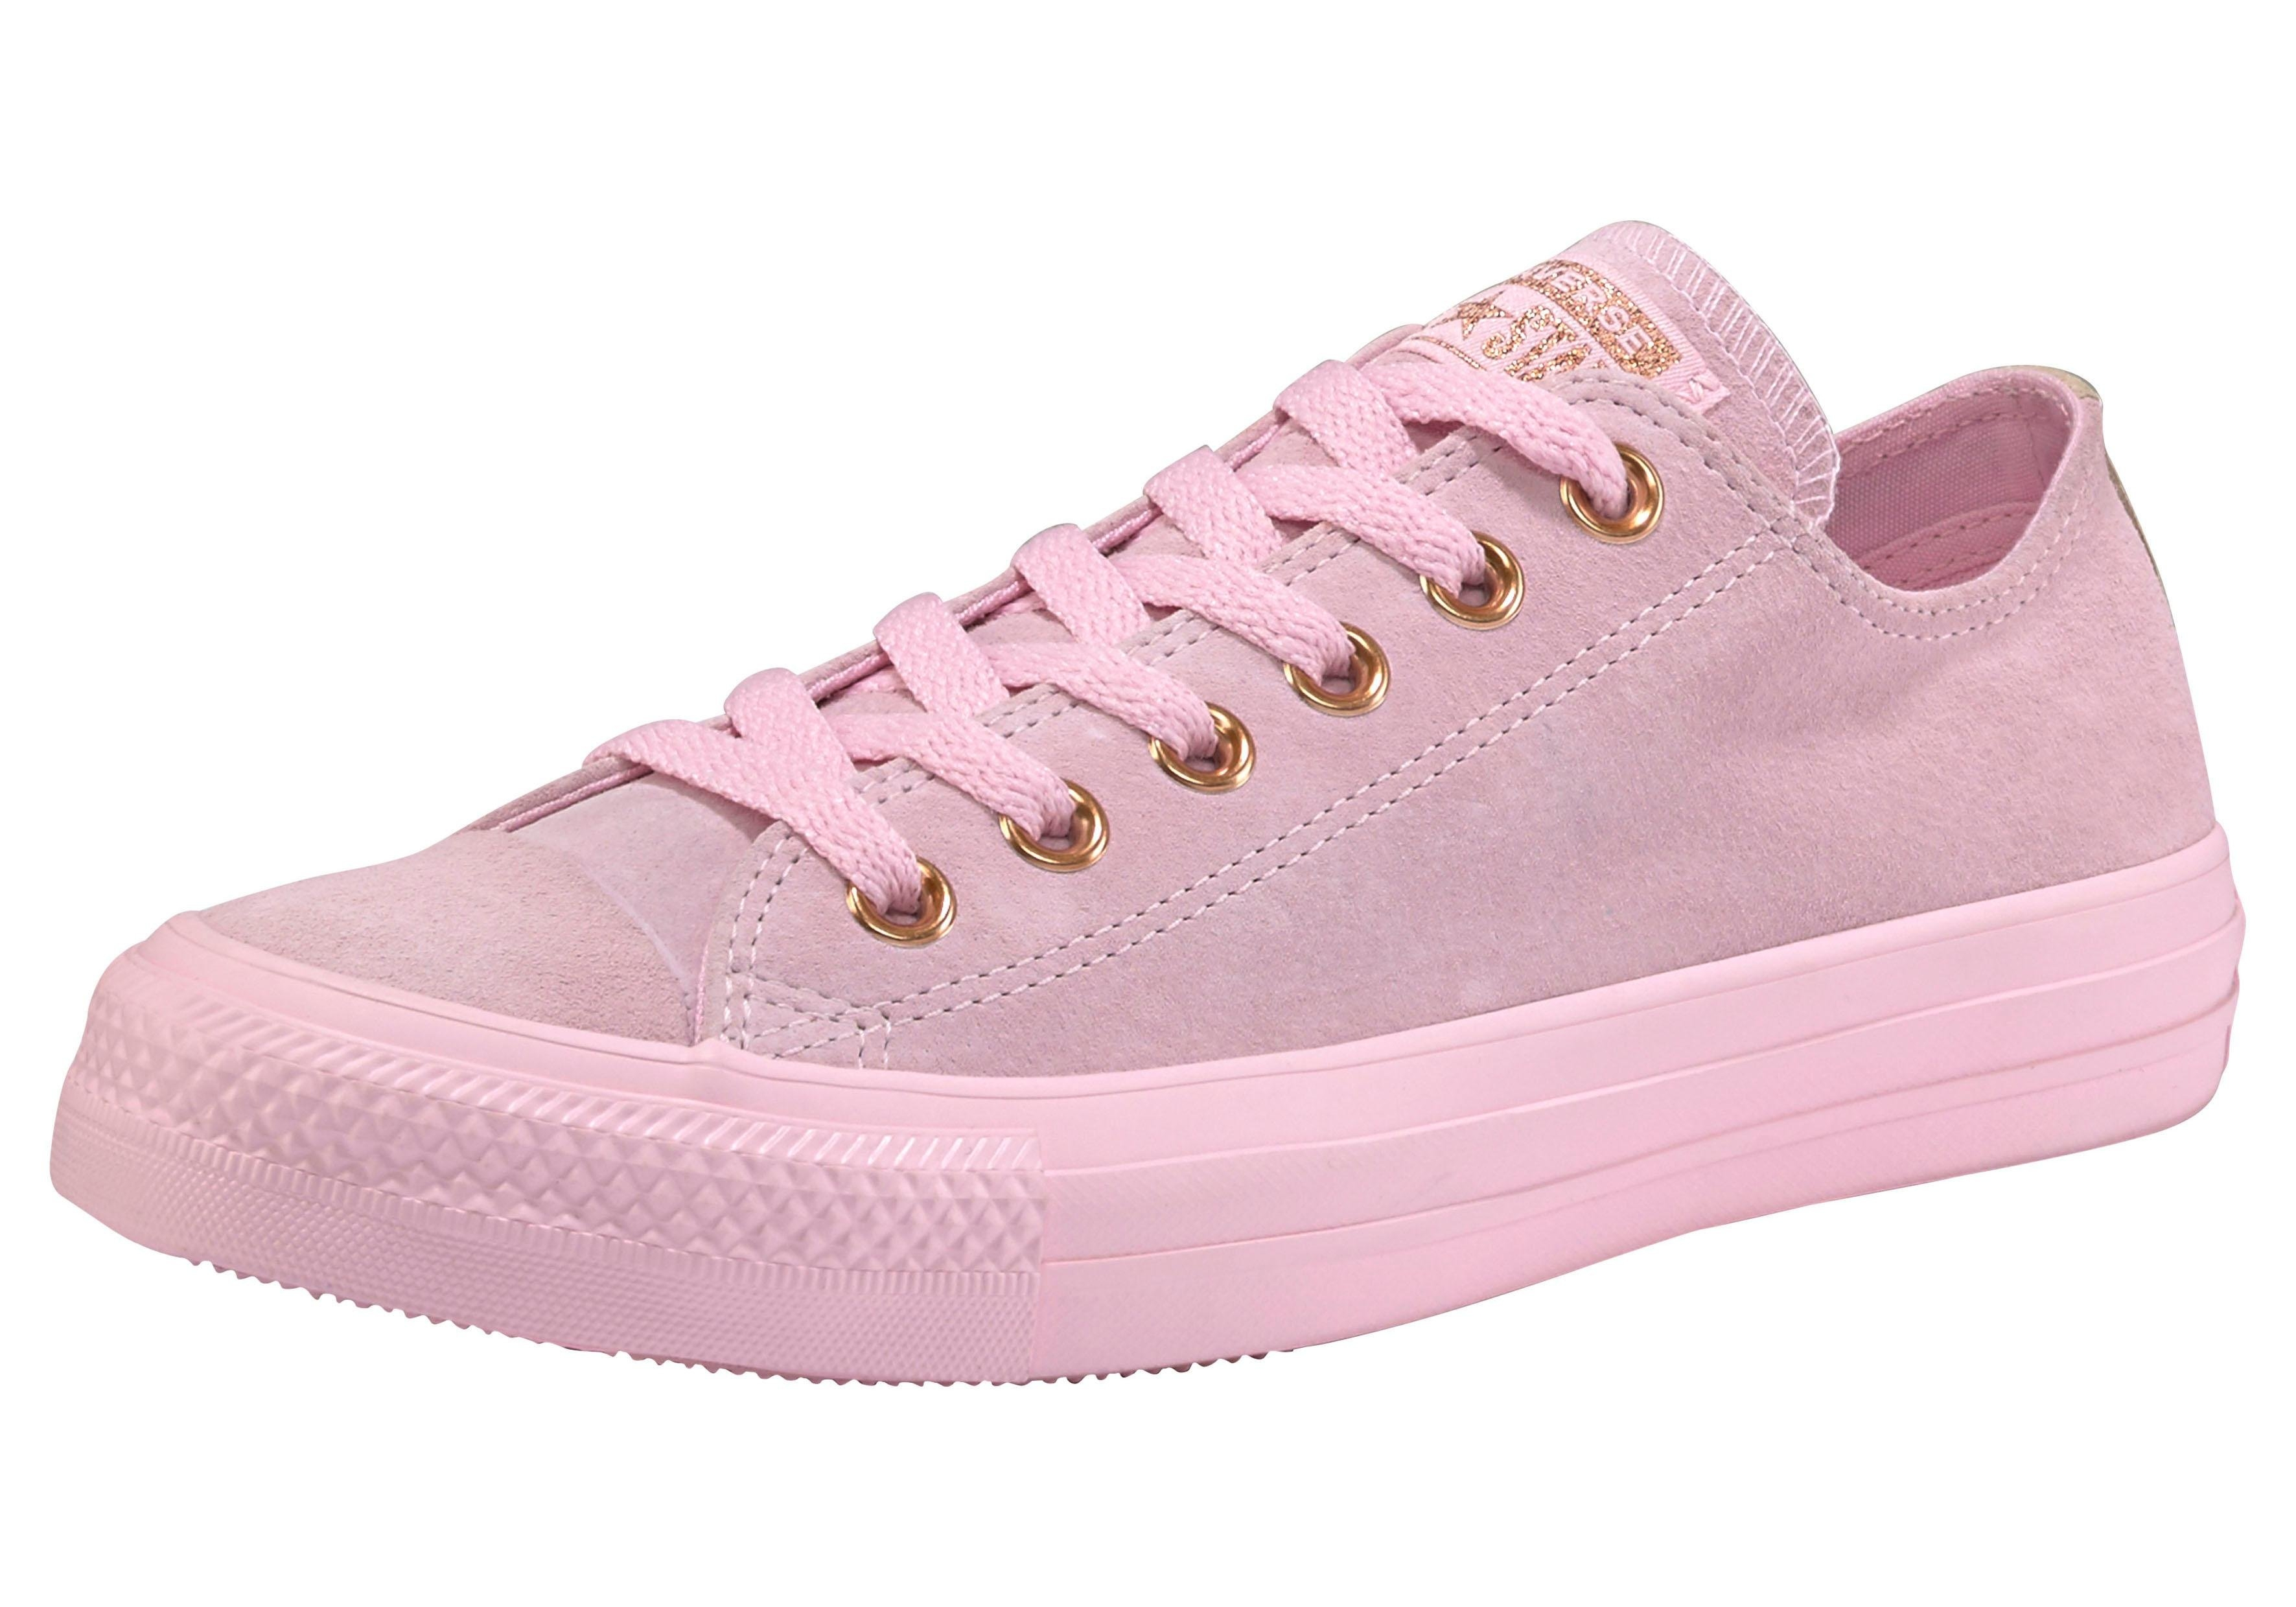 e36f5407b0c Afbeeldingsbron: Converse sneakers »Chuck Taylor All Star Ox Tonal Suede«